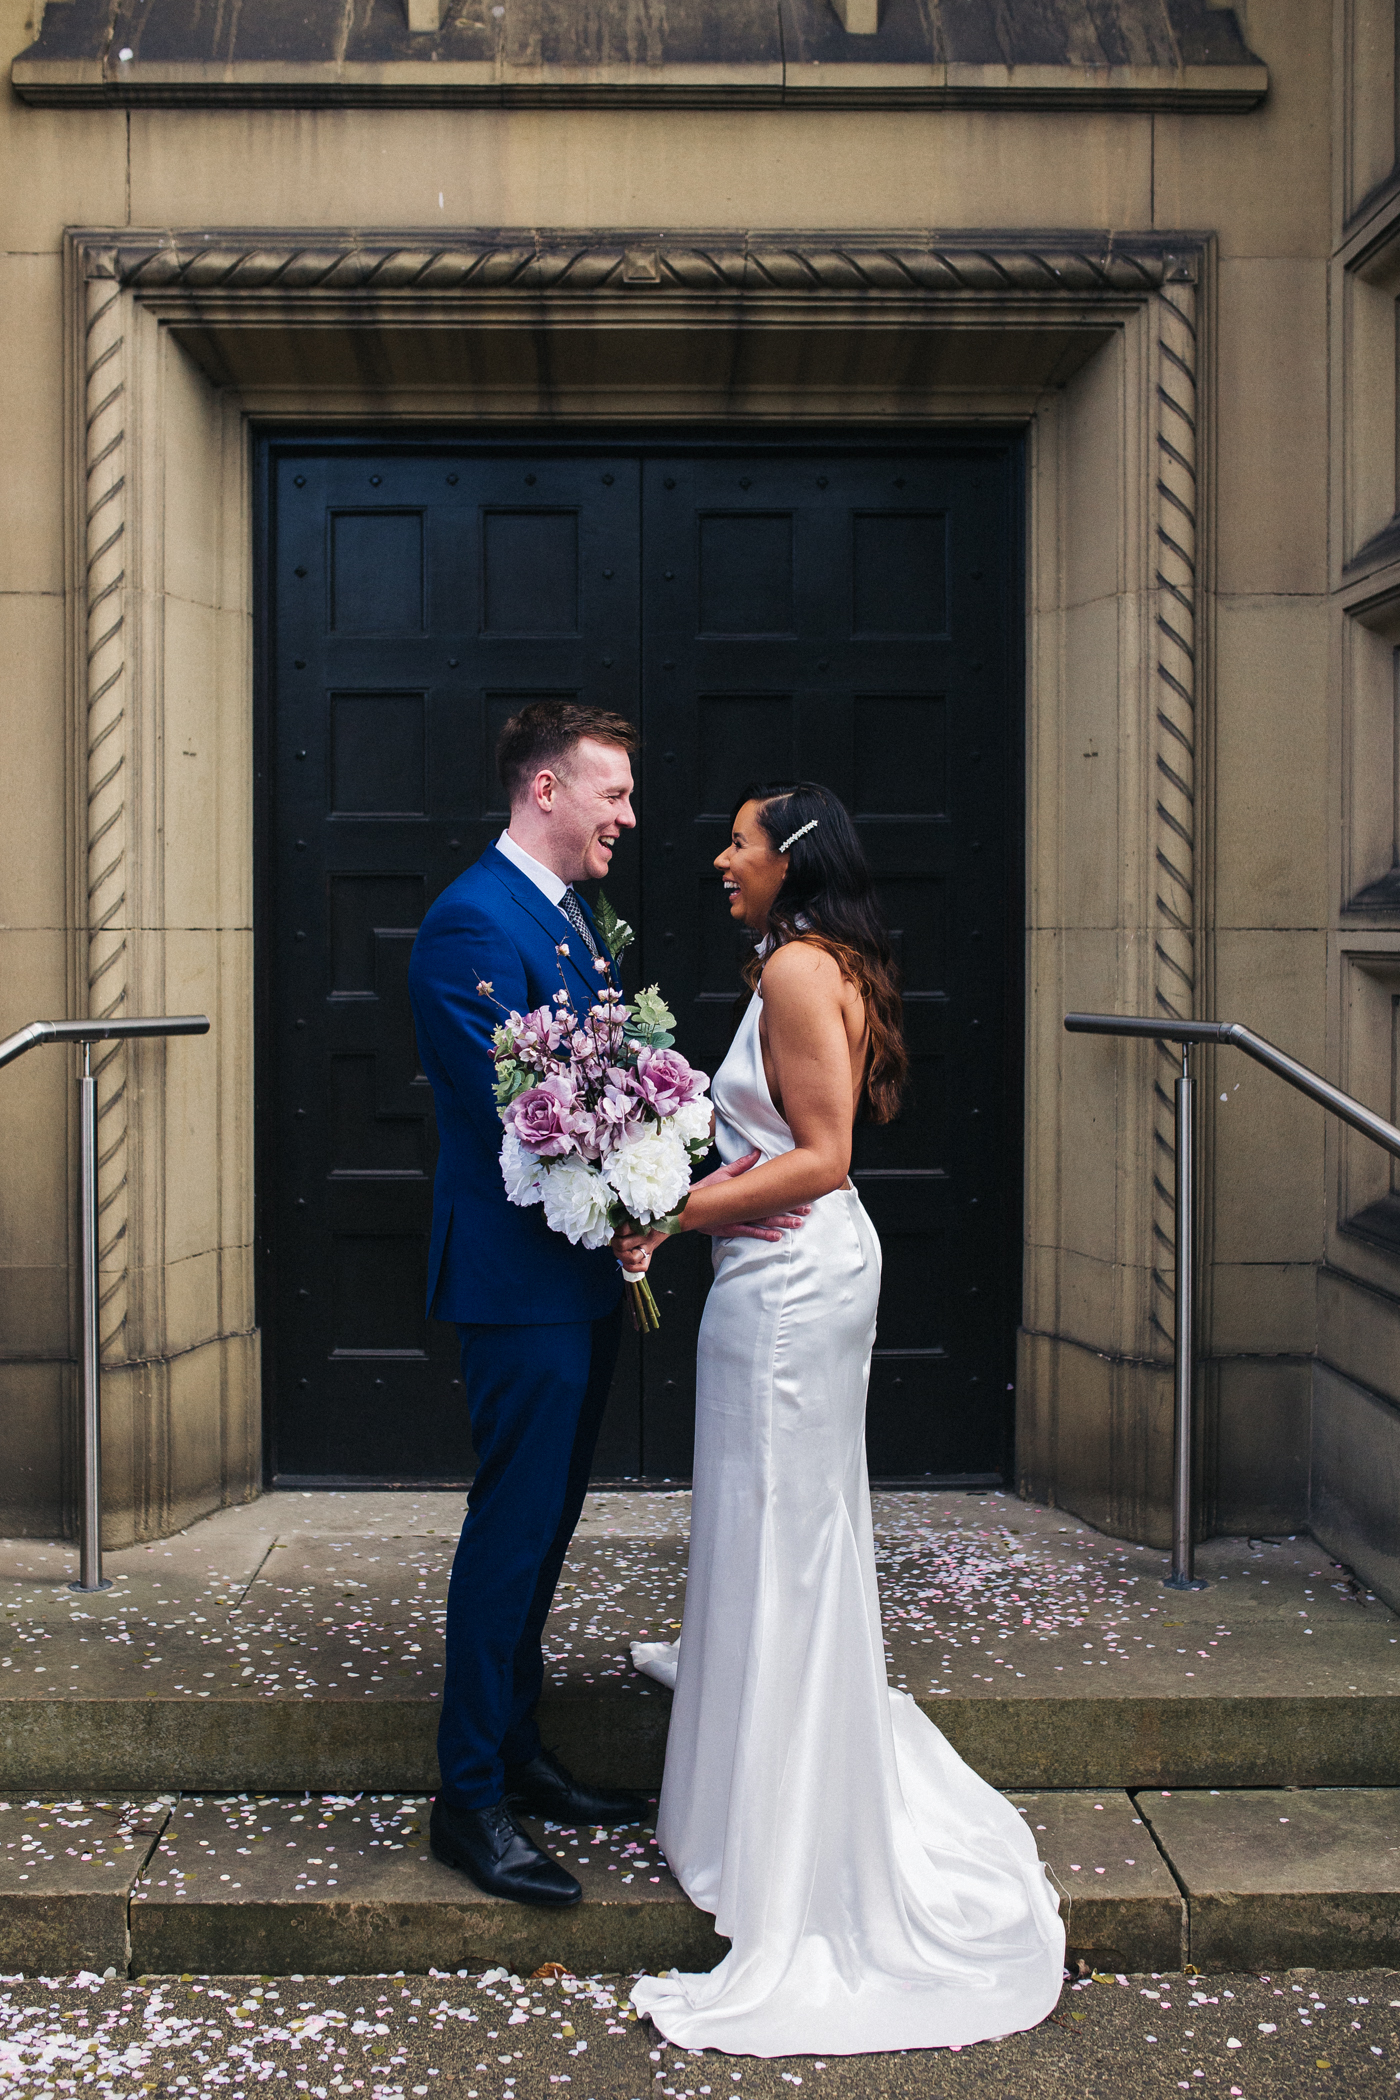 the bride and groom laugh together after the ceremony. relaxed teesside middlesbrough wedding photographer, wedding at home